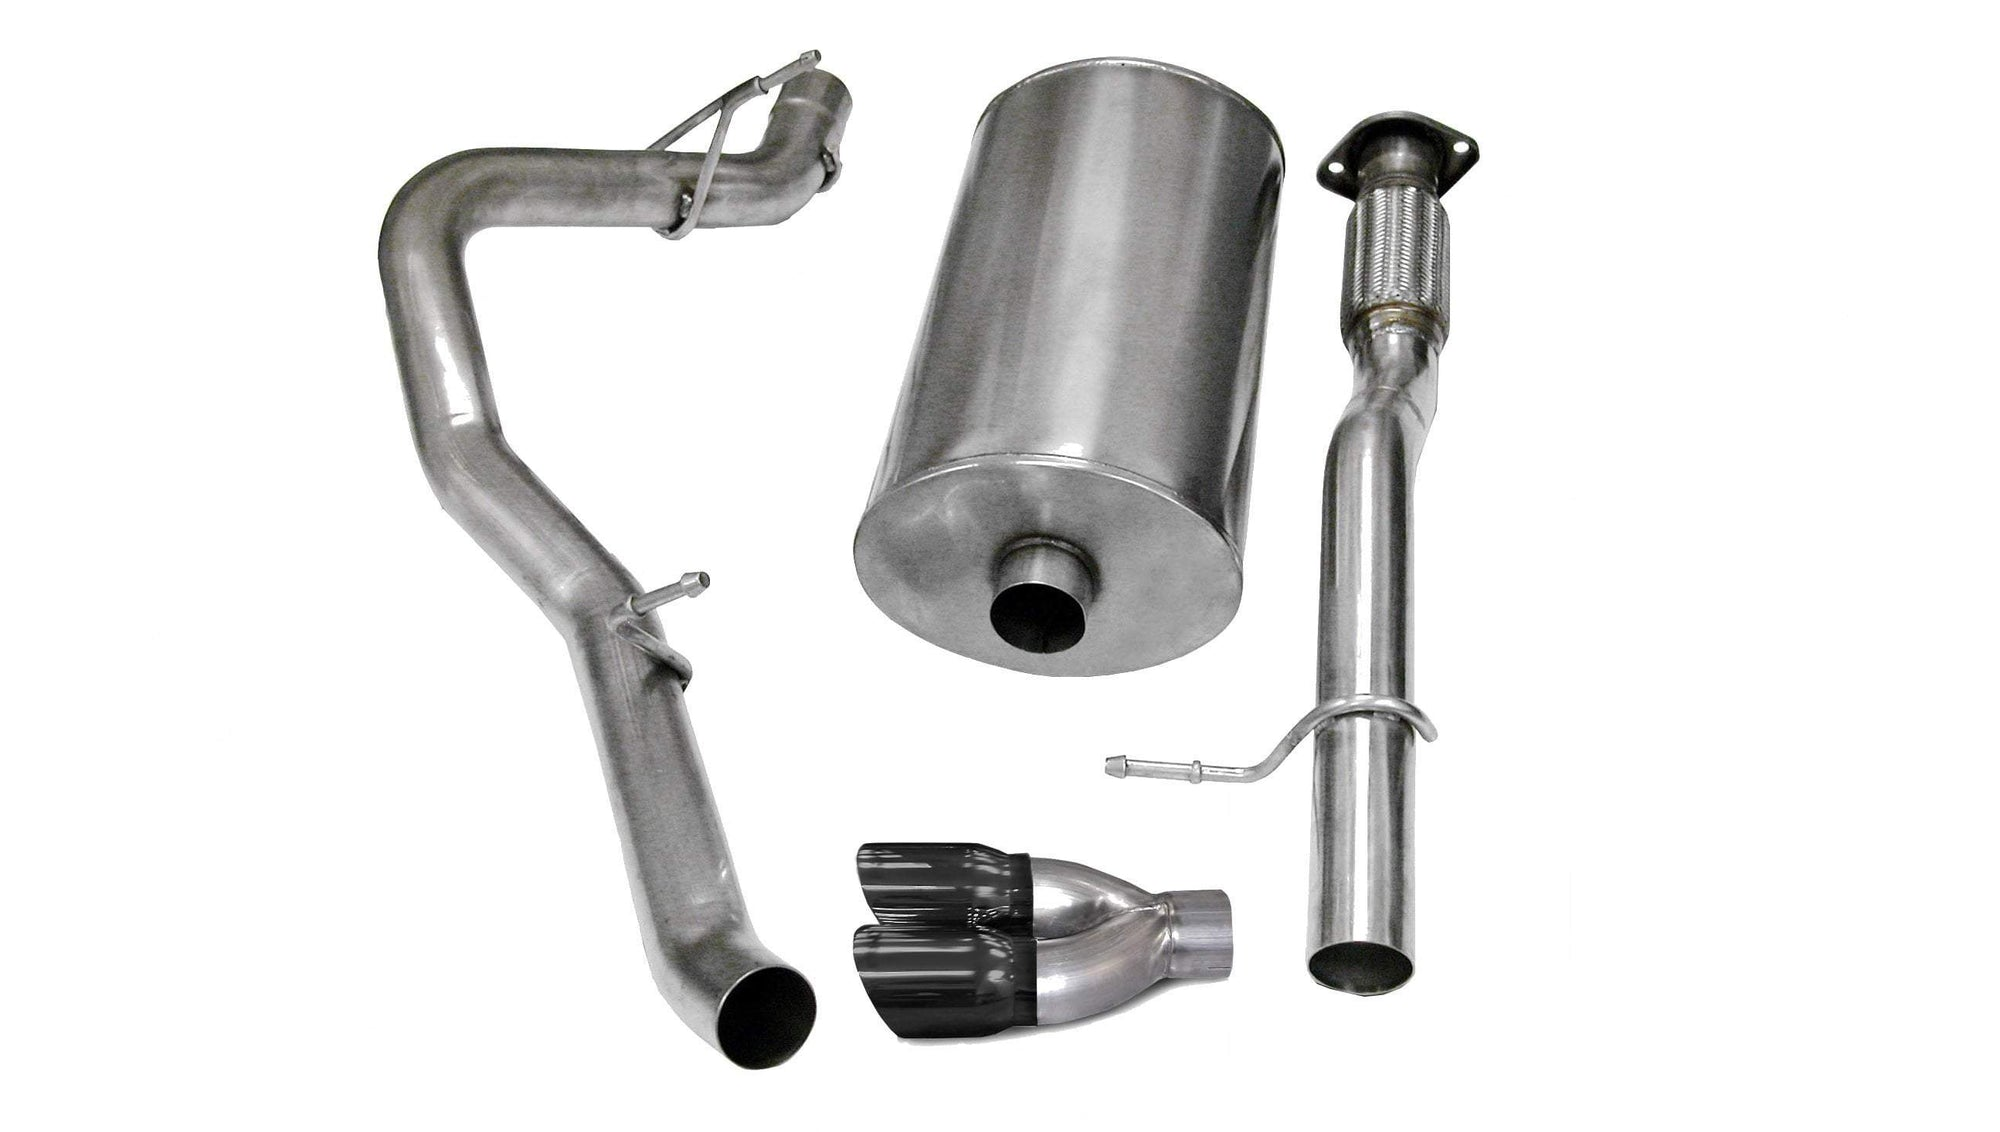 "CORSA PERFORMANCE Cat-Back Exhaust Polished / Sport / Single Side - Twin 4.0in 2007-2009 Chevrolet Avalanche, Suburban, GMC Yukon XL, 5.3L, 6.0L V8, 3.0"" Single Side Exit Cat-Back Exhaust System with Twin 4.0"" Tip (14246) Sport Sound Level"